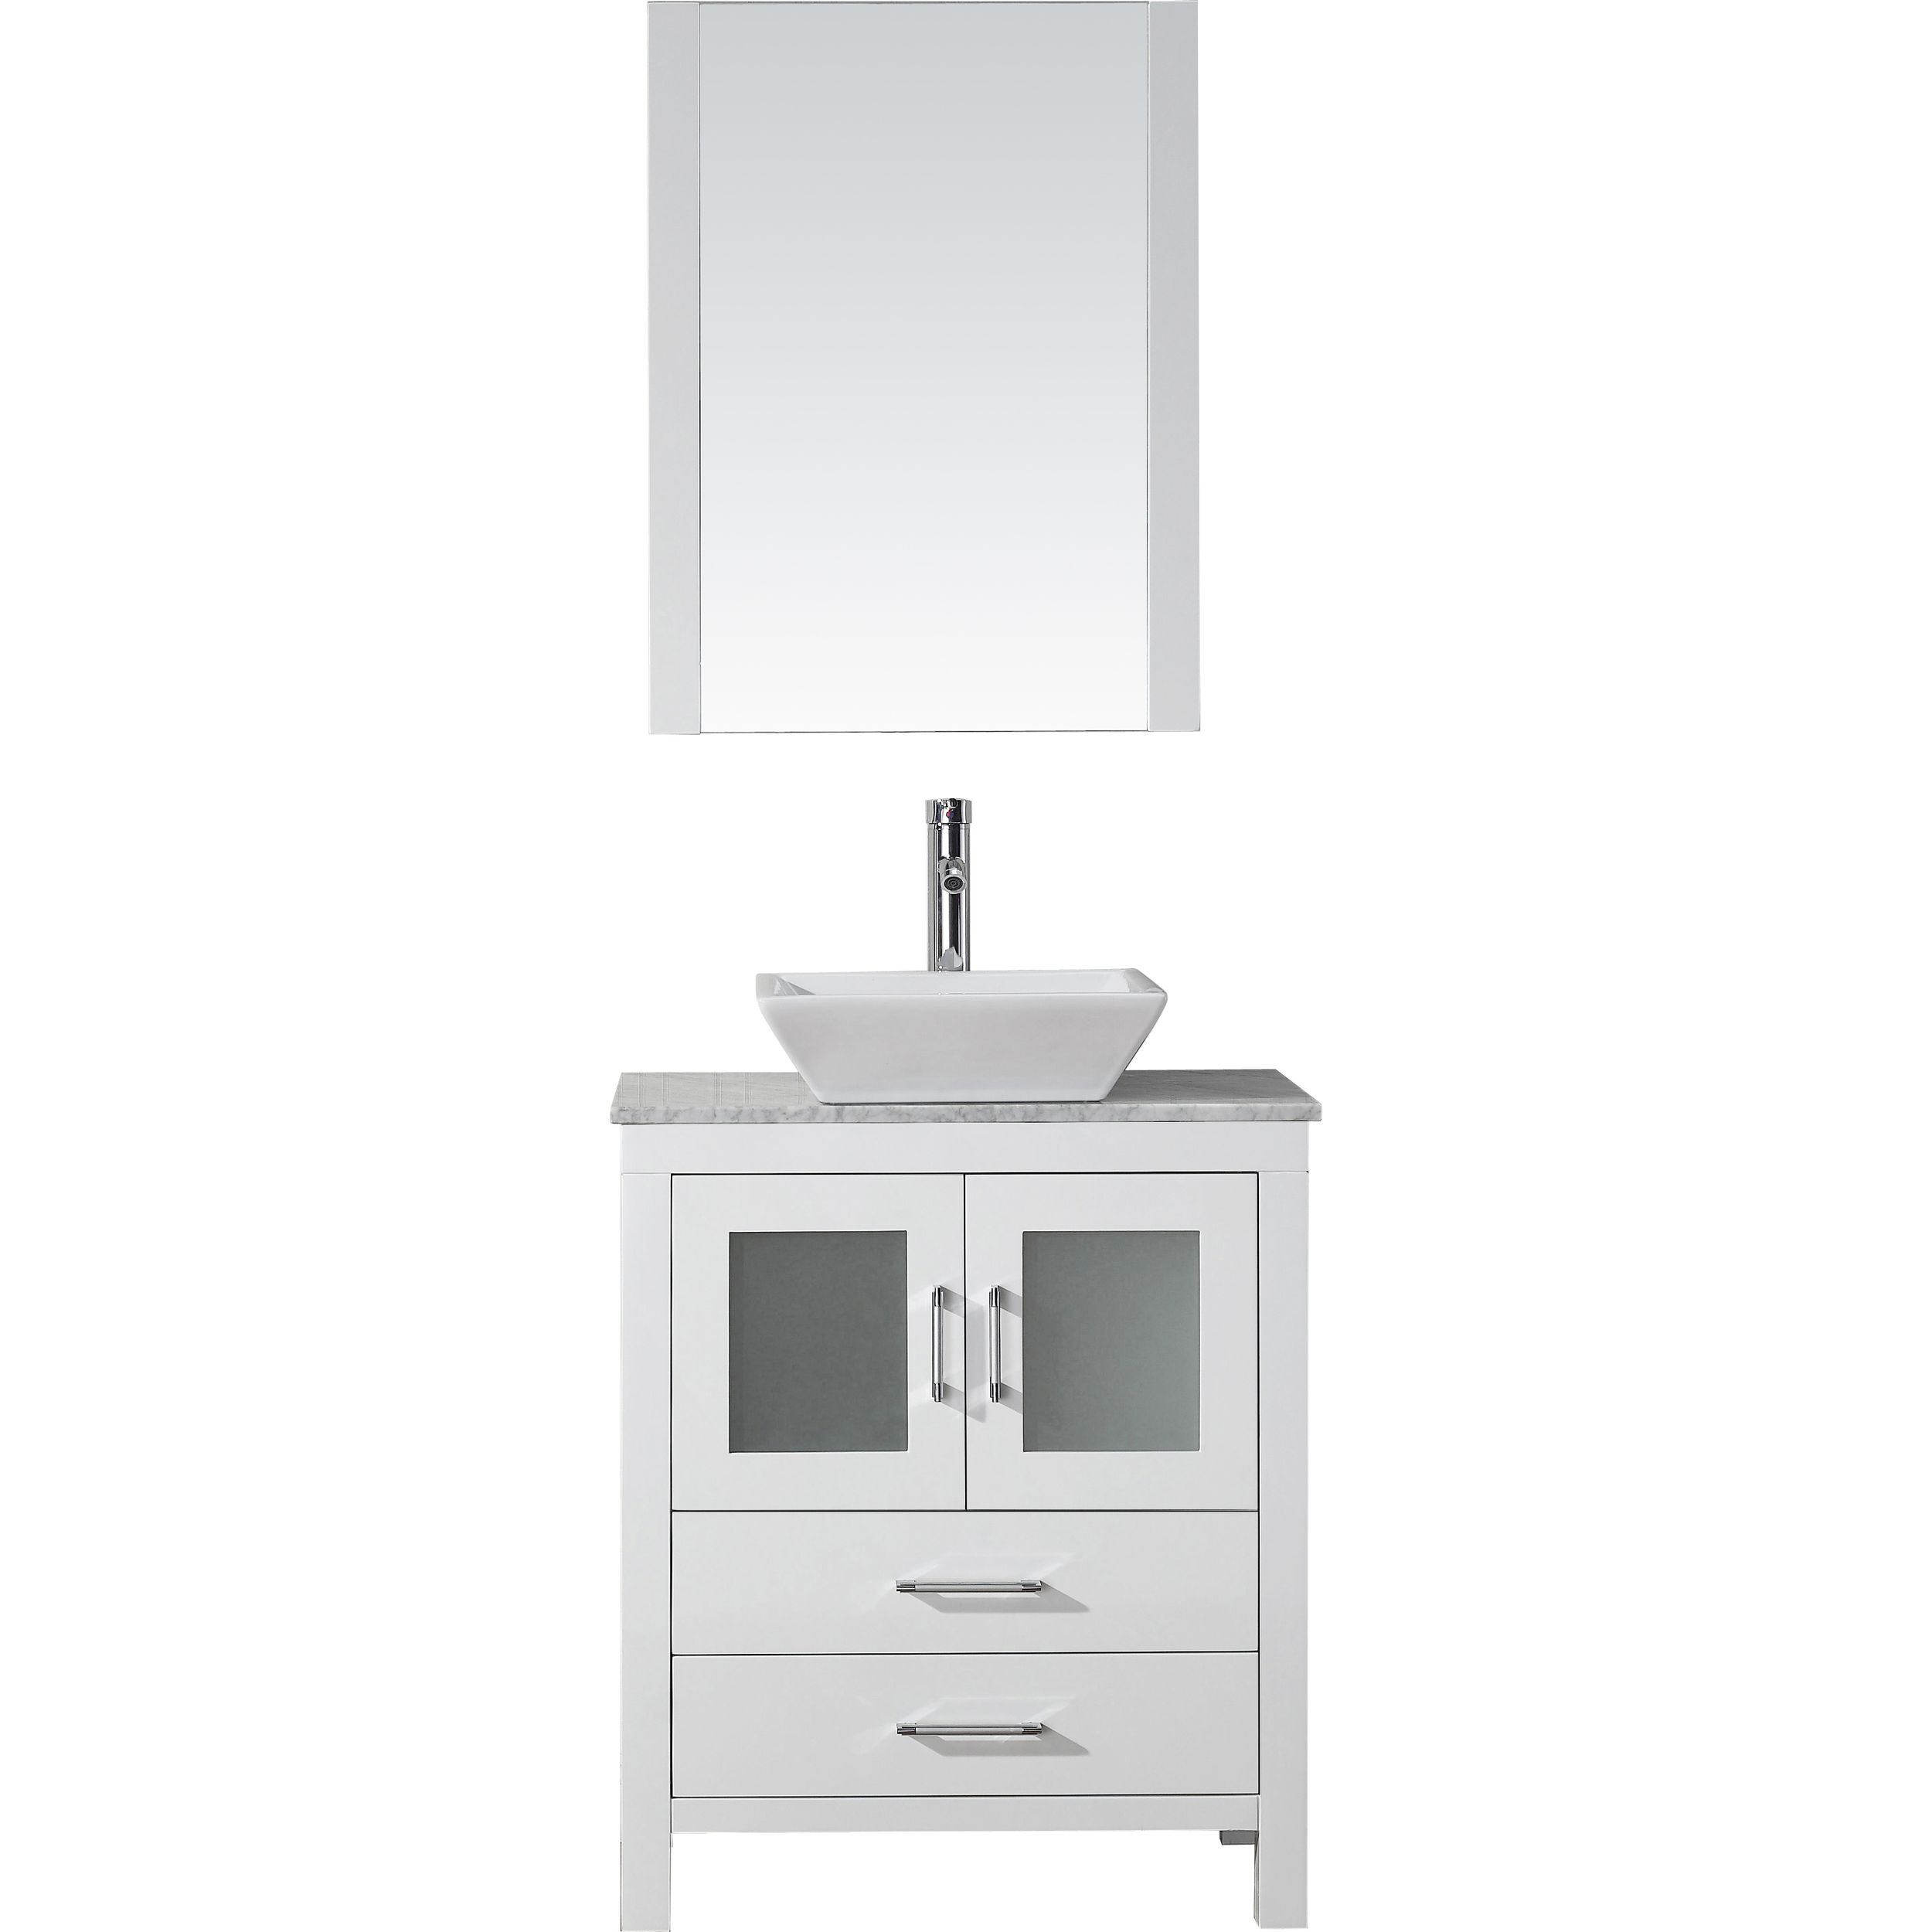 sink artistry cabinets top with exemplary vanities most floating wall inch bathroom custom mounted vanity